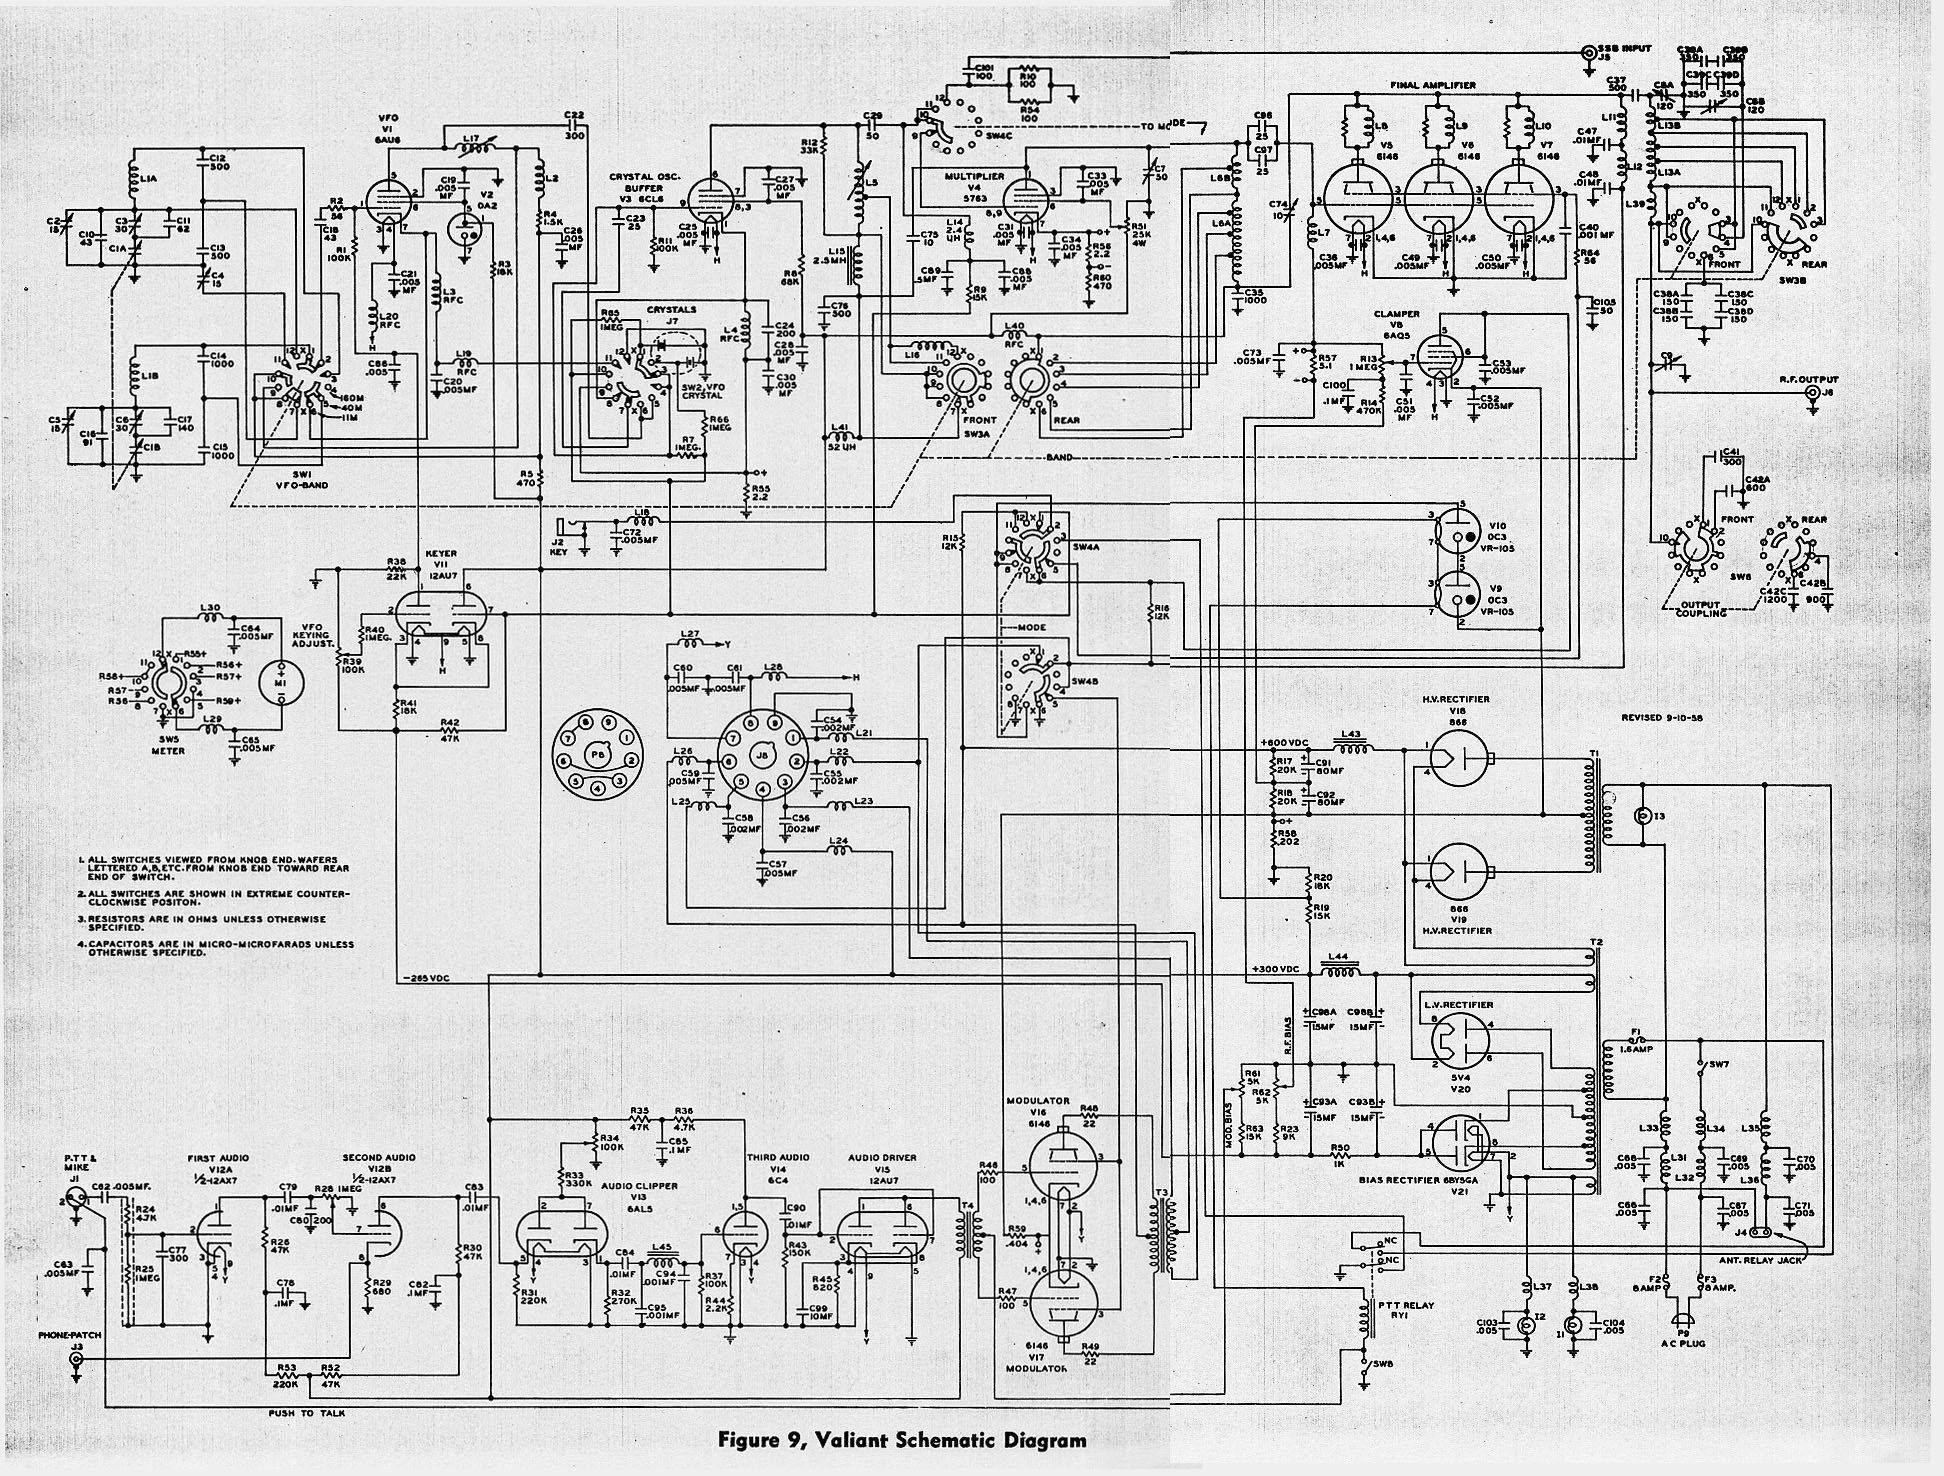 DIAGRAM] Yamaha Viking Wiring Diagram FULL Version HD Quality Wiring Diagram  - TABELAQUIOSQUE.LOCANDABAGLIONI.ITtabelaquiosque.locandabaglioni.it